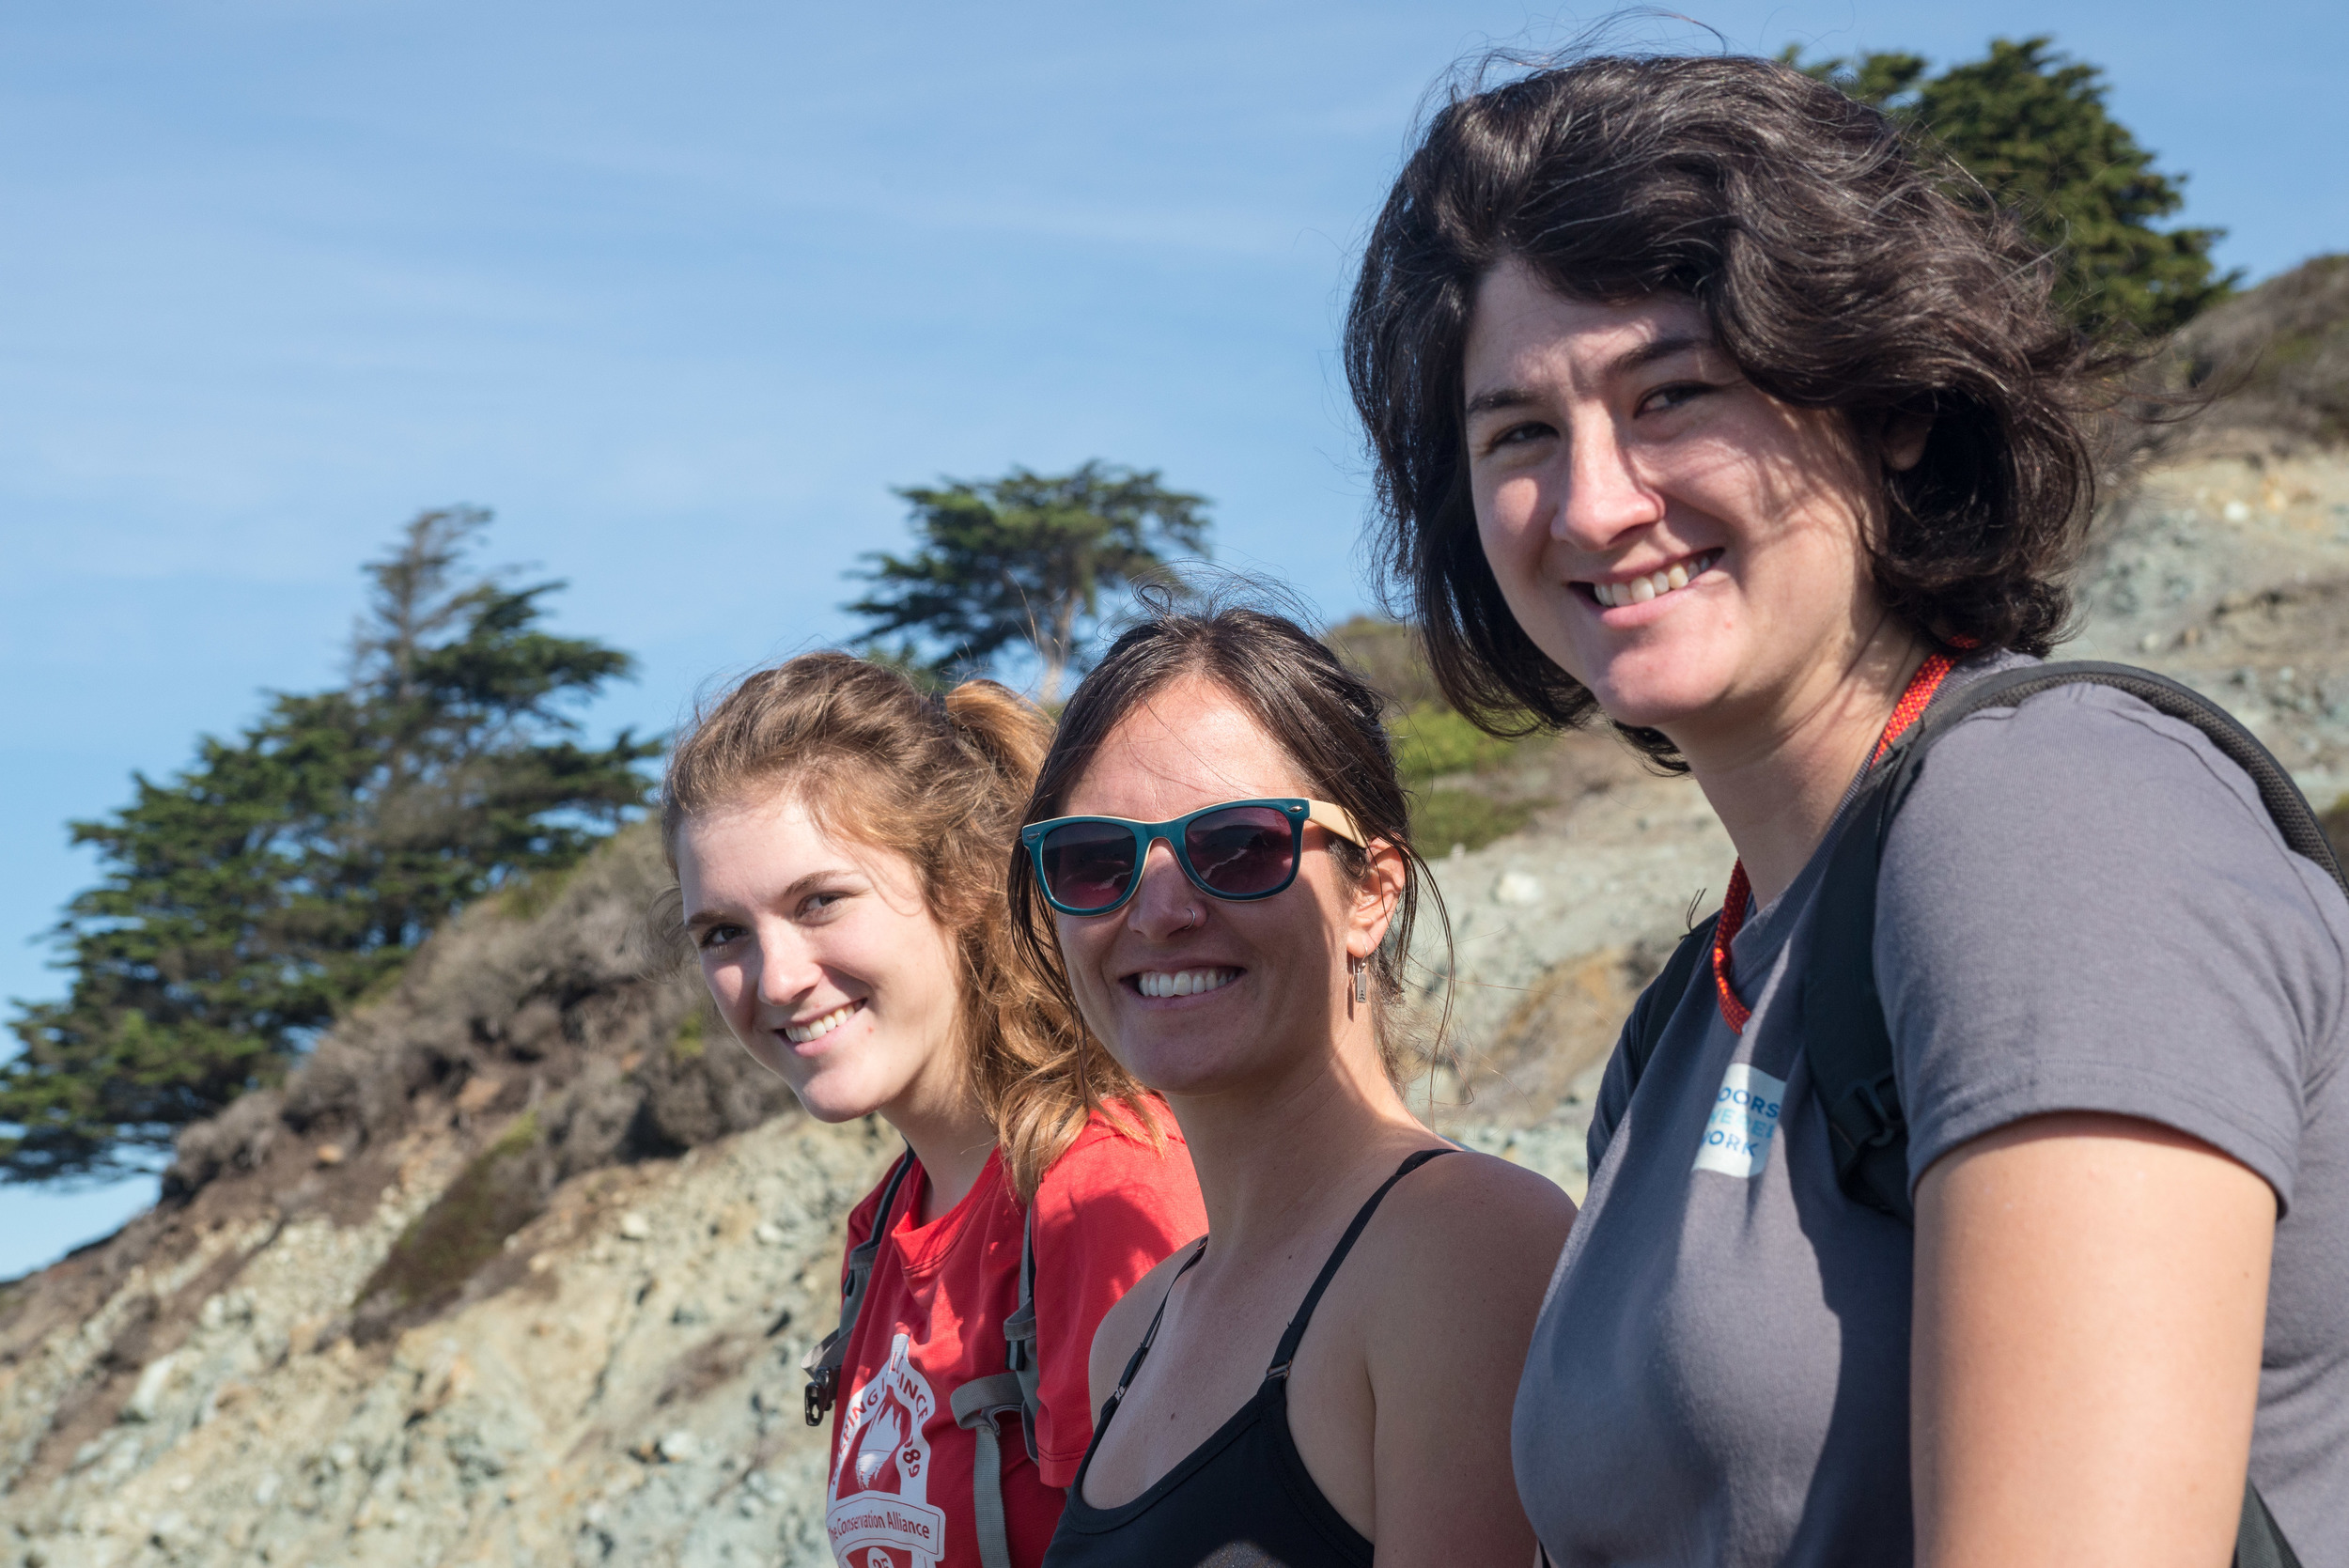 New partnerships, new friends. Brooke from the Portland Gear Hub, Meg from Idaho Youth Wilderness Initiative, and Kellen from the Outdoors Empowered Network cruise the trails together.